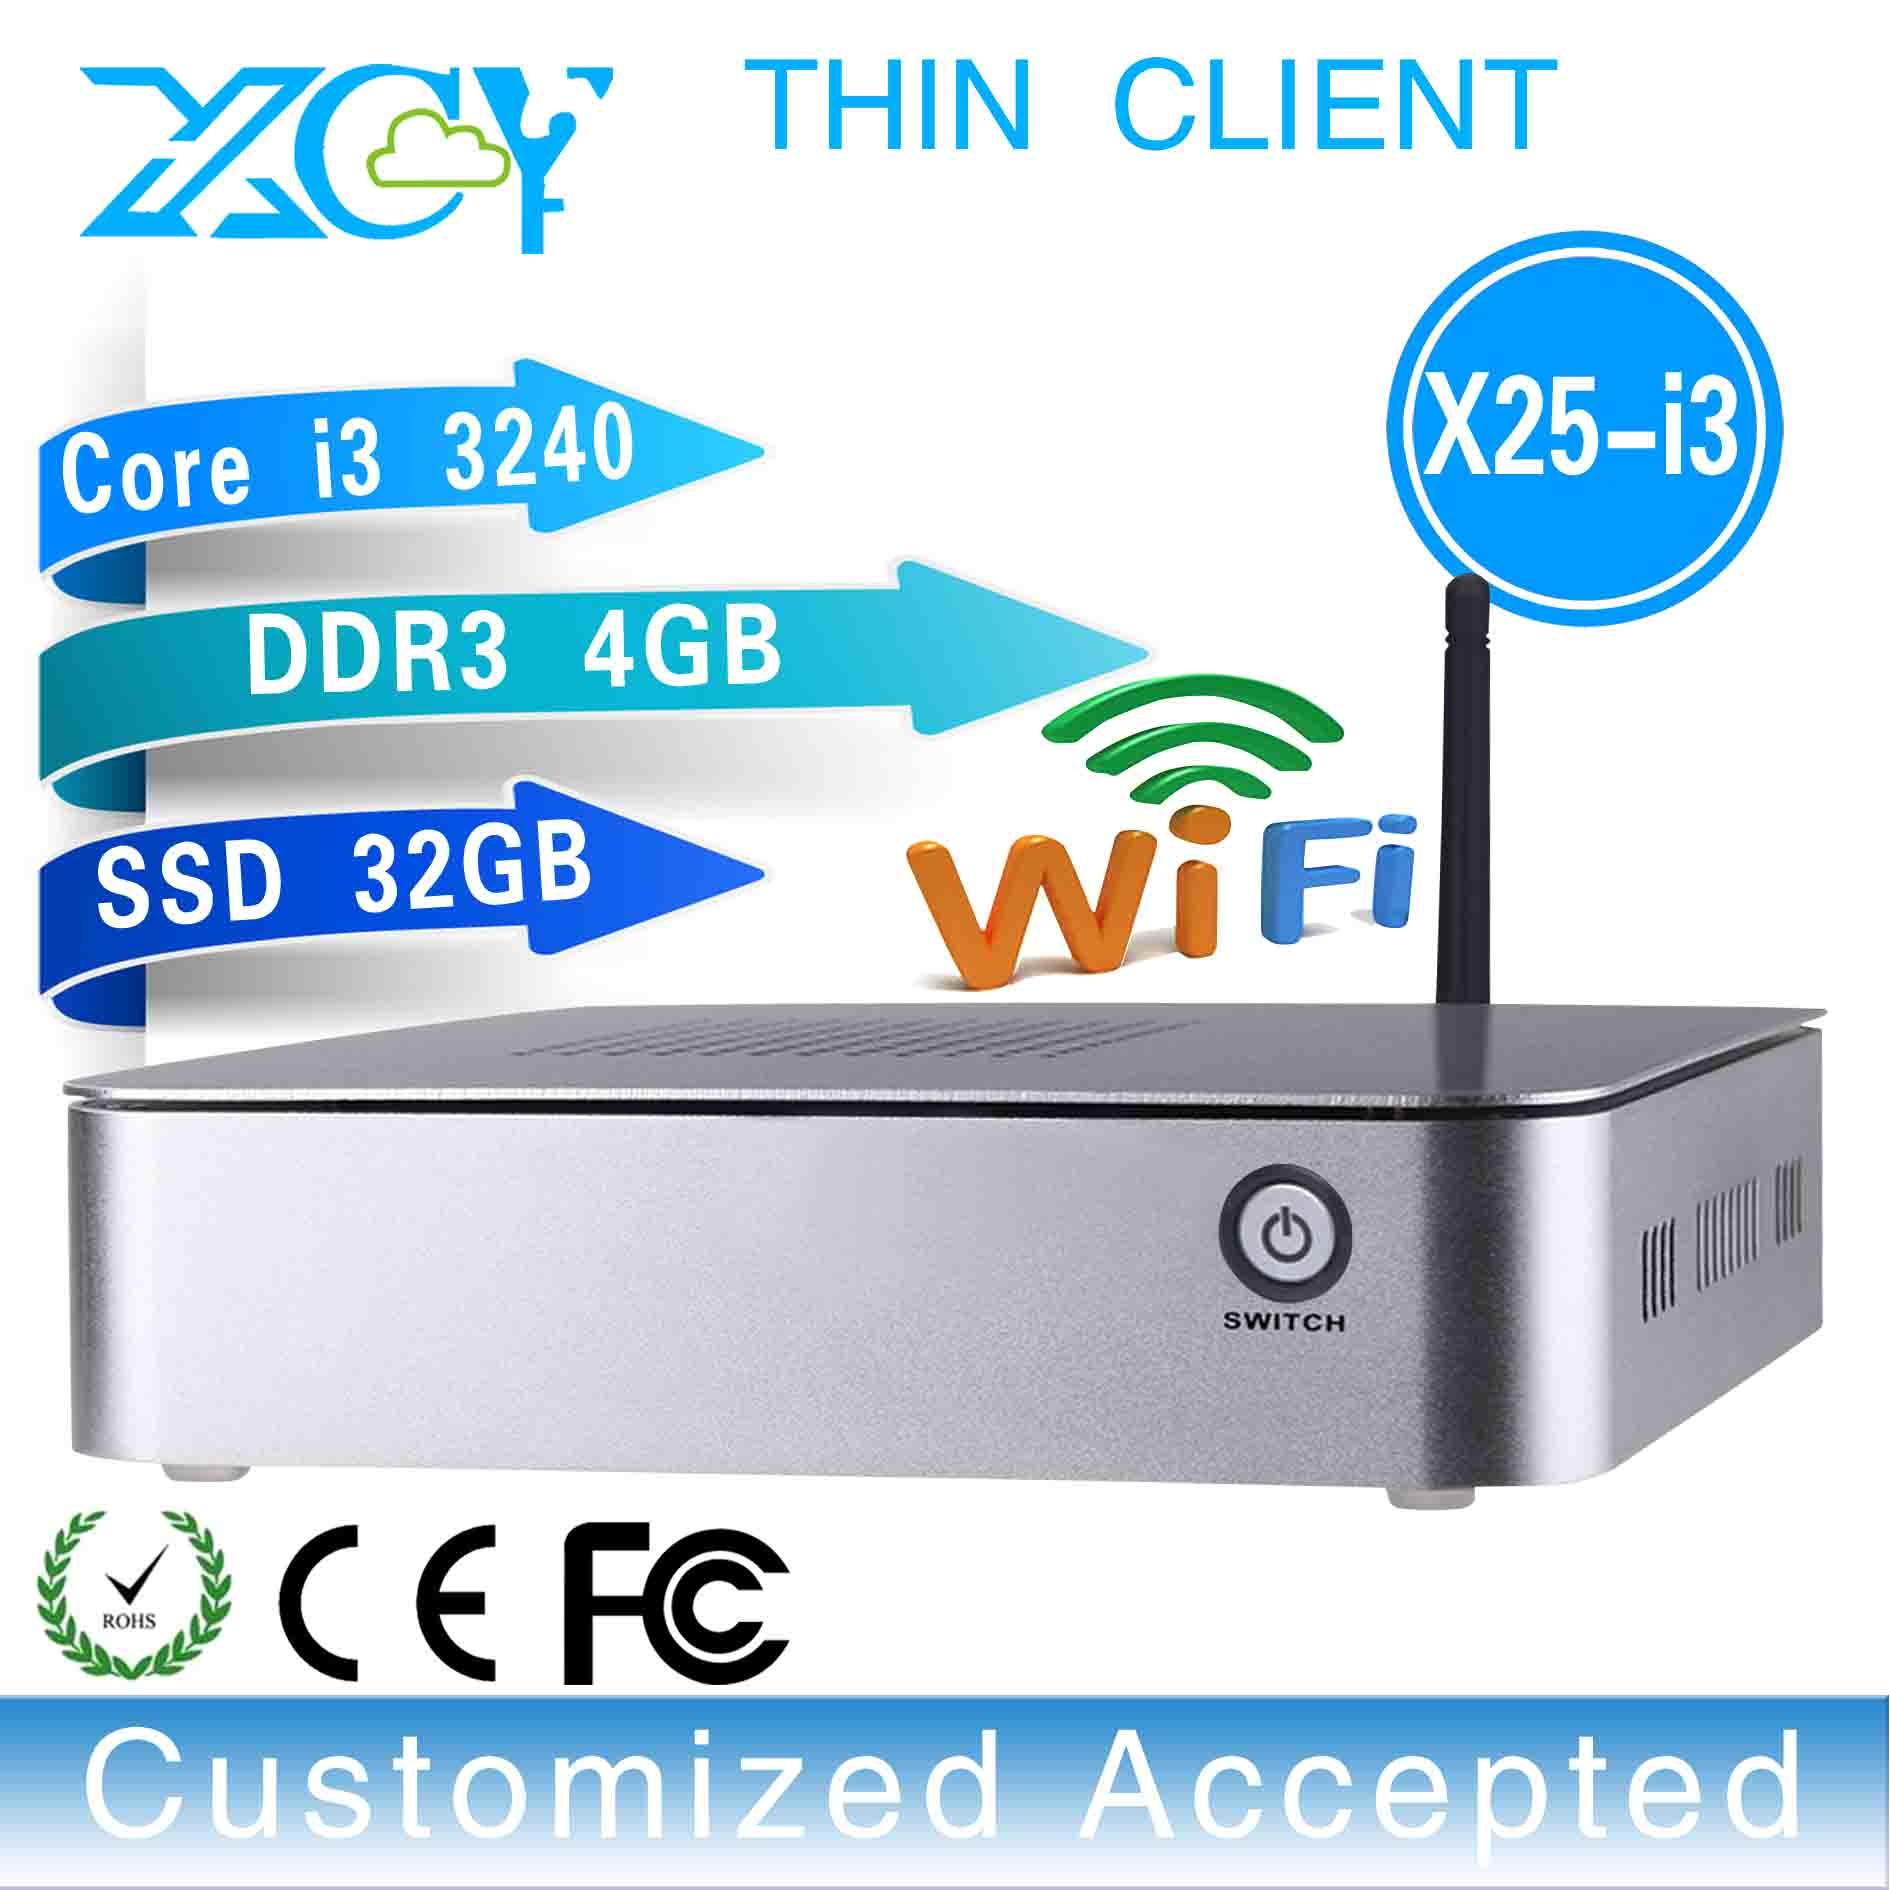 Facrory competitive price hot on sale X25-i3 Intel core i3 3240 latest desktop computers fan mini industrial pc(China (Mainland))